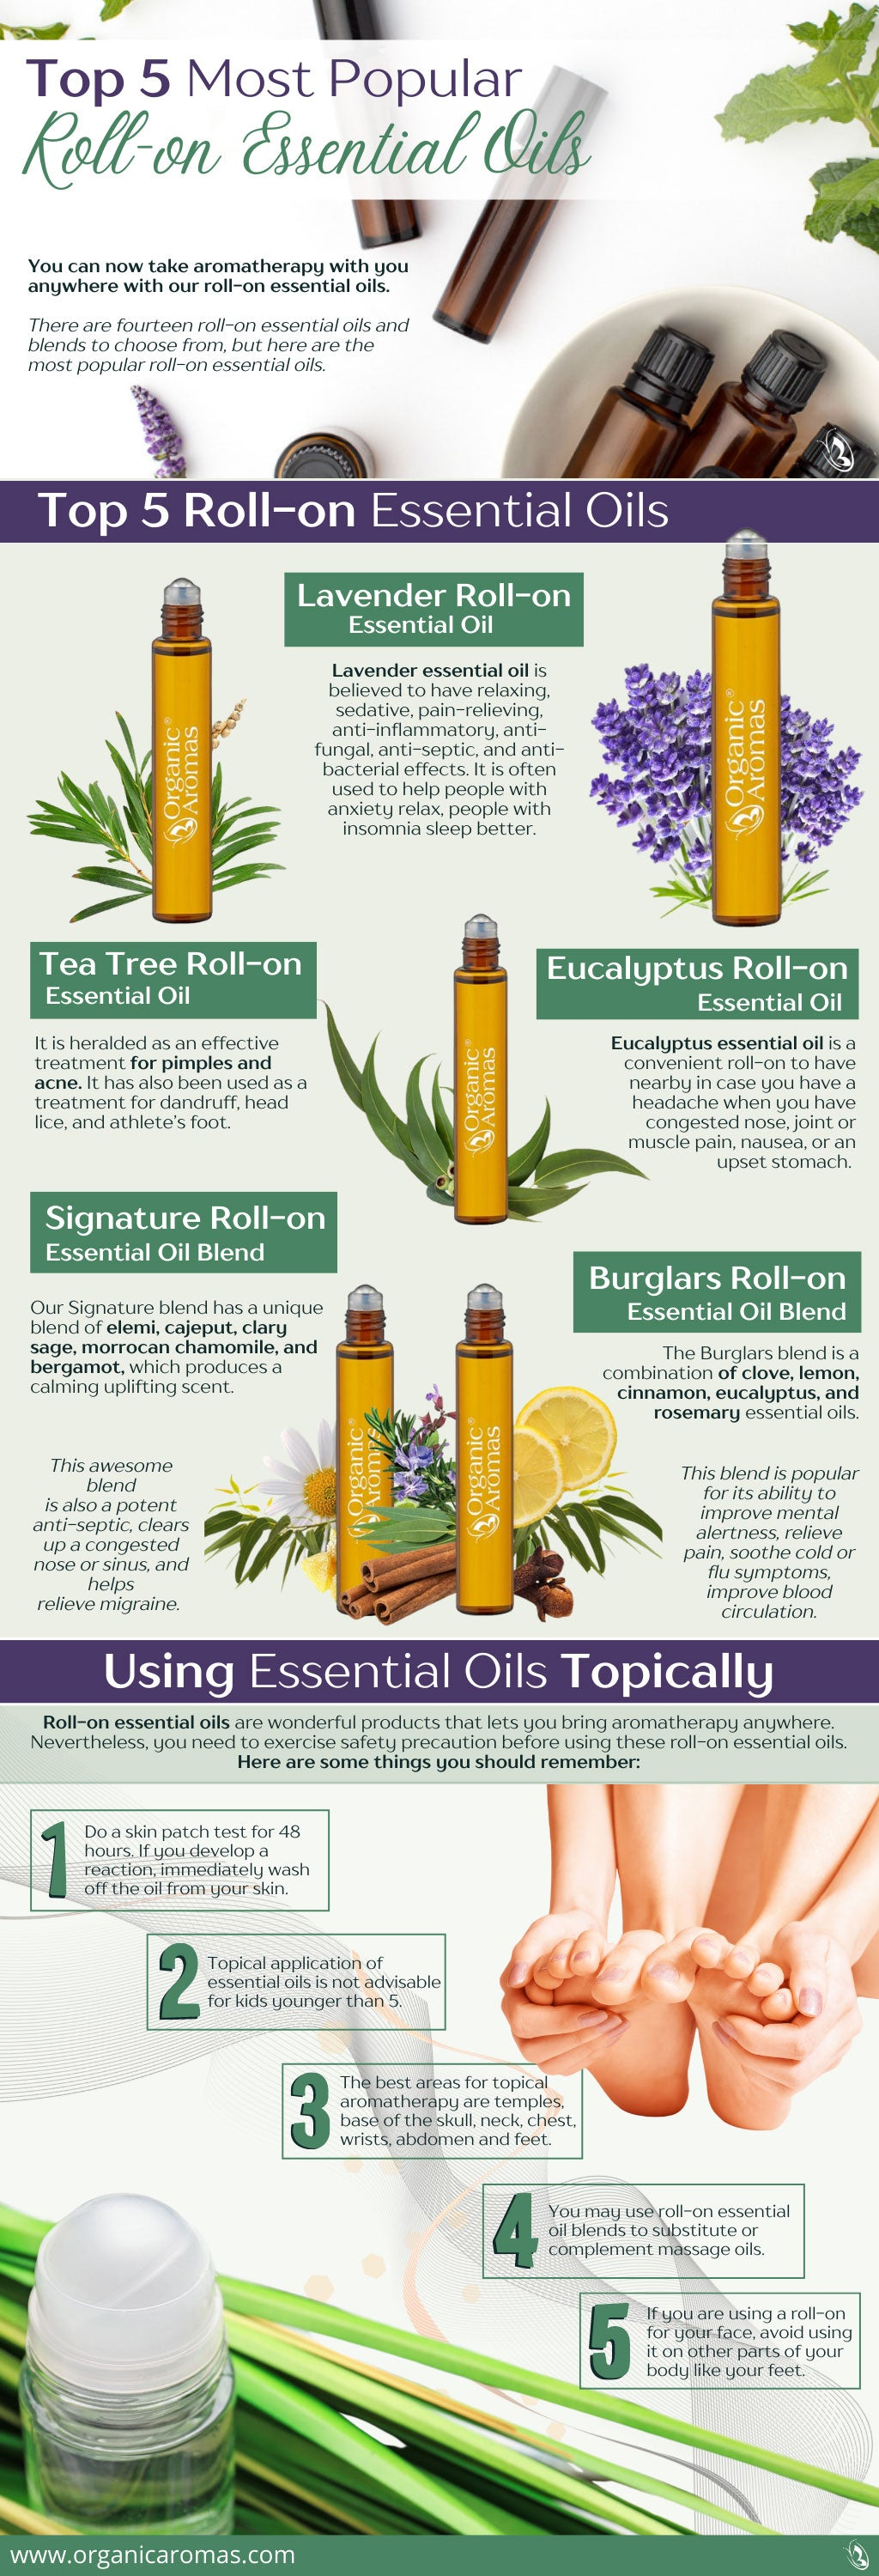 Top 5 Most Popular Roll-on Essential Oils